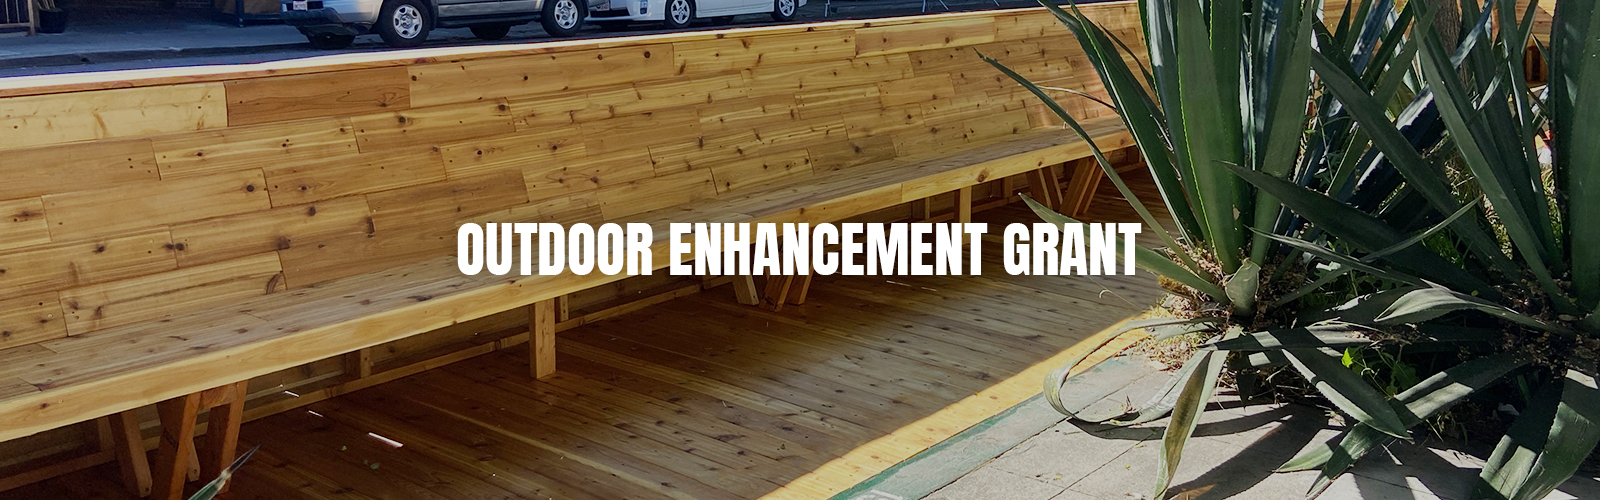 Outdoor Enhancement Grant